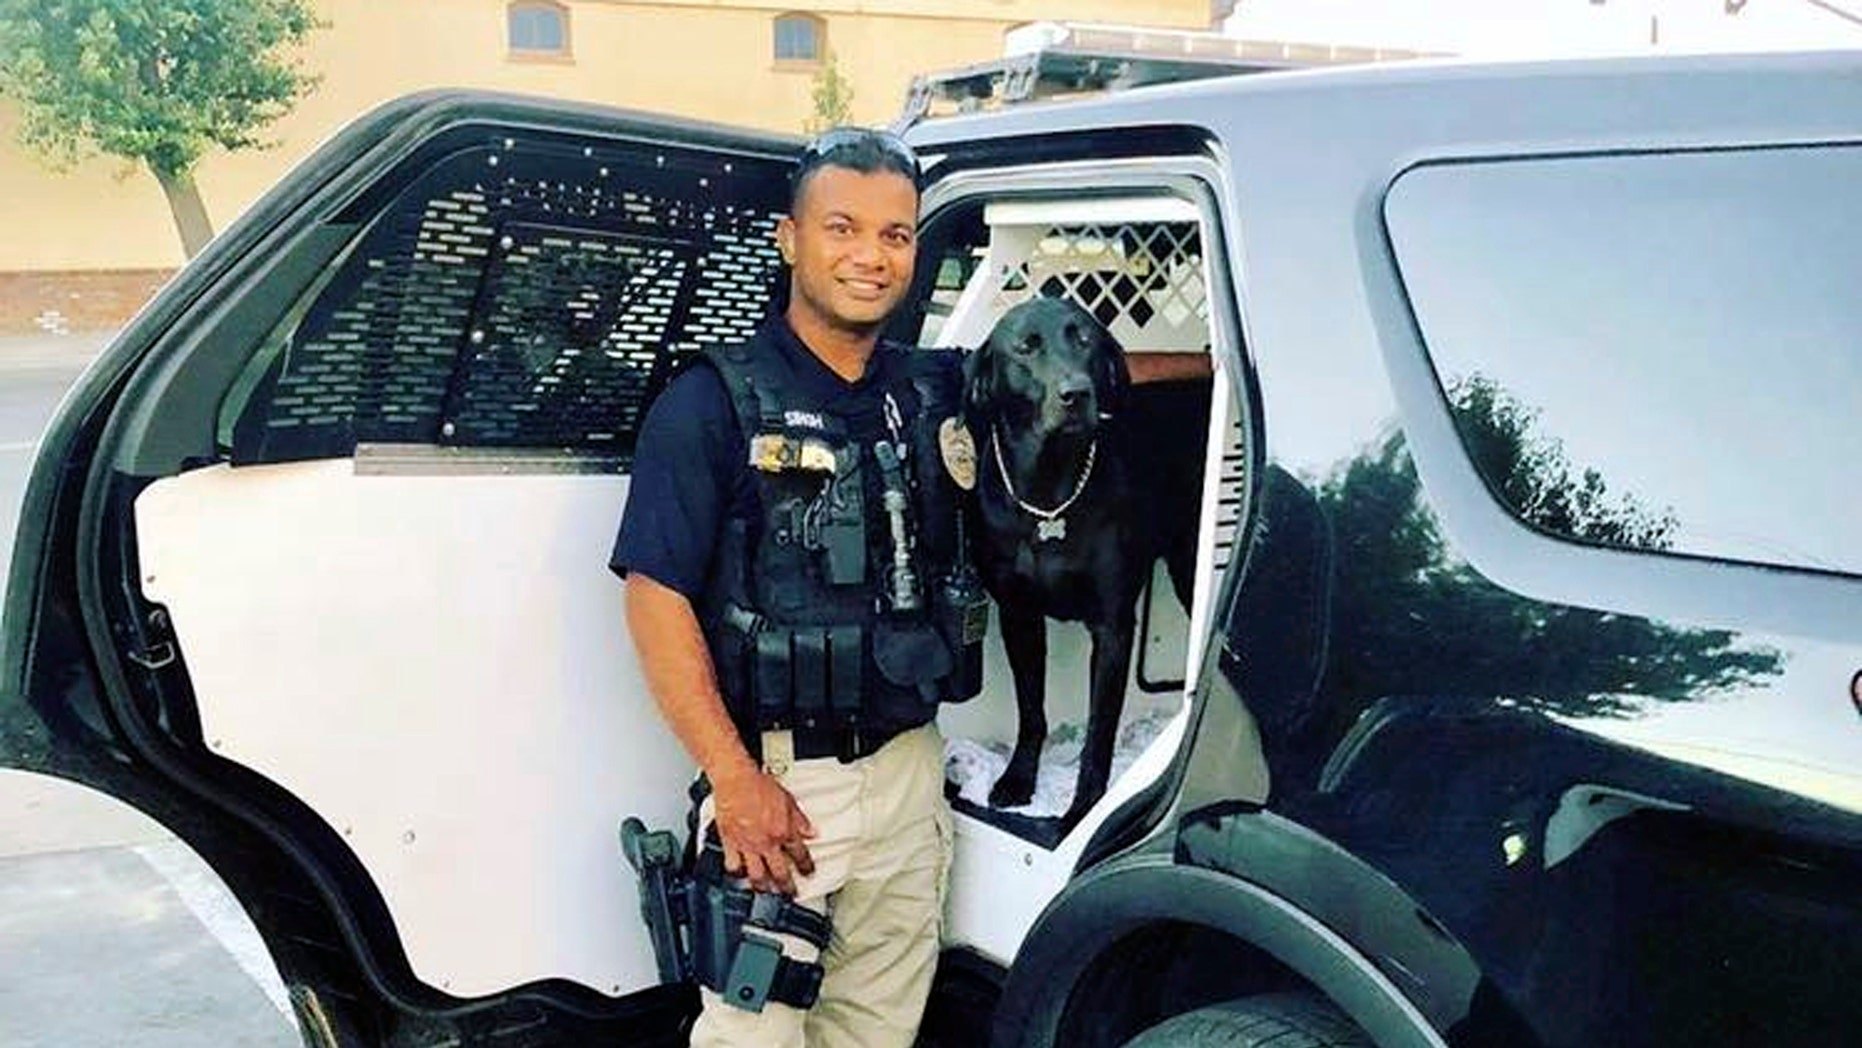 Funeral will be held in California for slain police officer